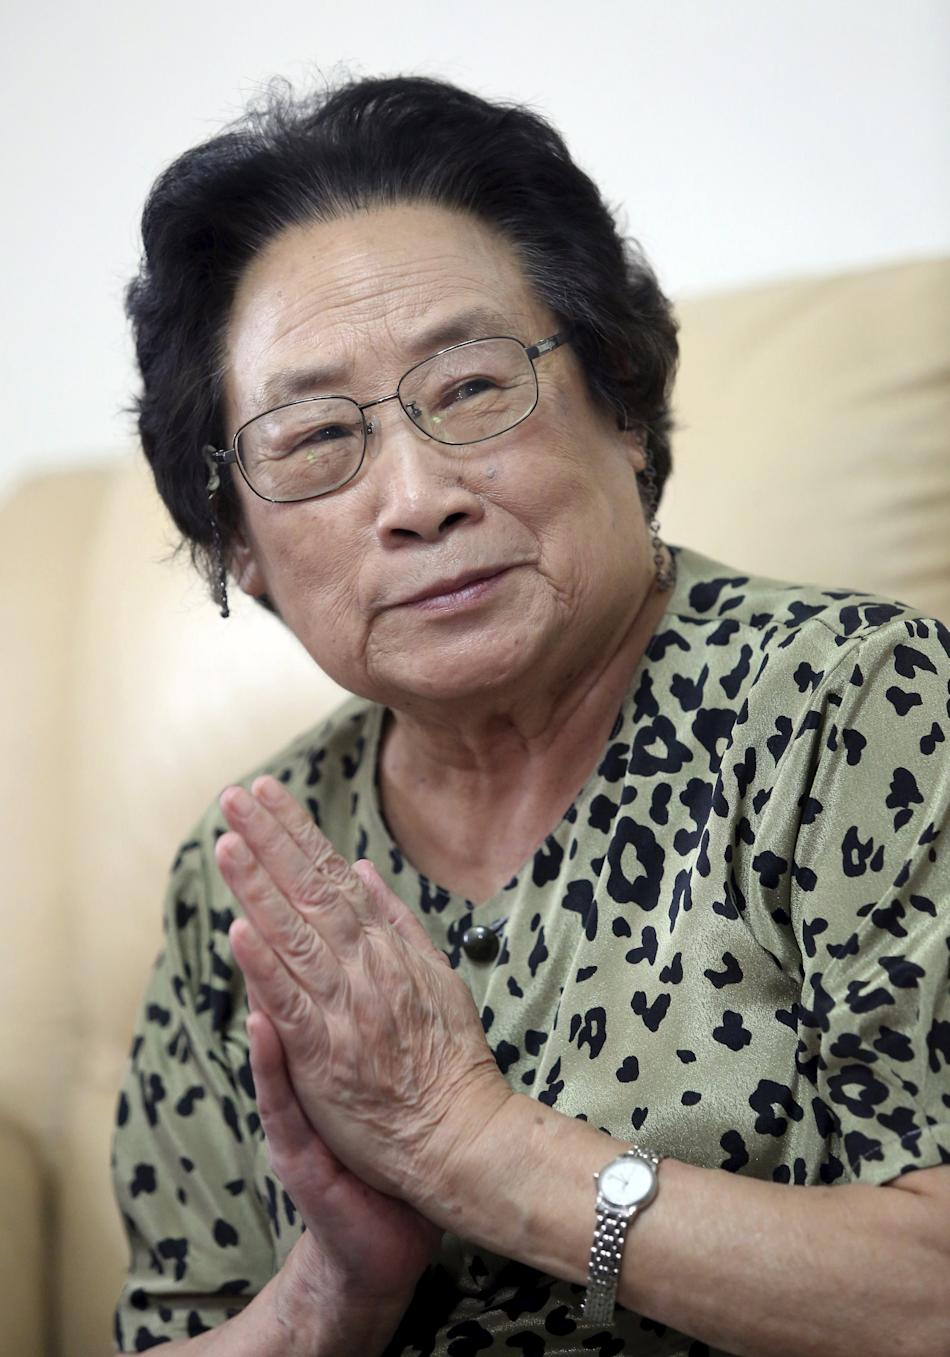 Tu Youyou, one of the three awardees for the 2015 Nobel Prize for Medicine, gestures during a meeting at her home, in Beijing